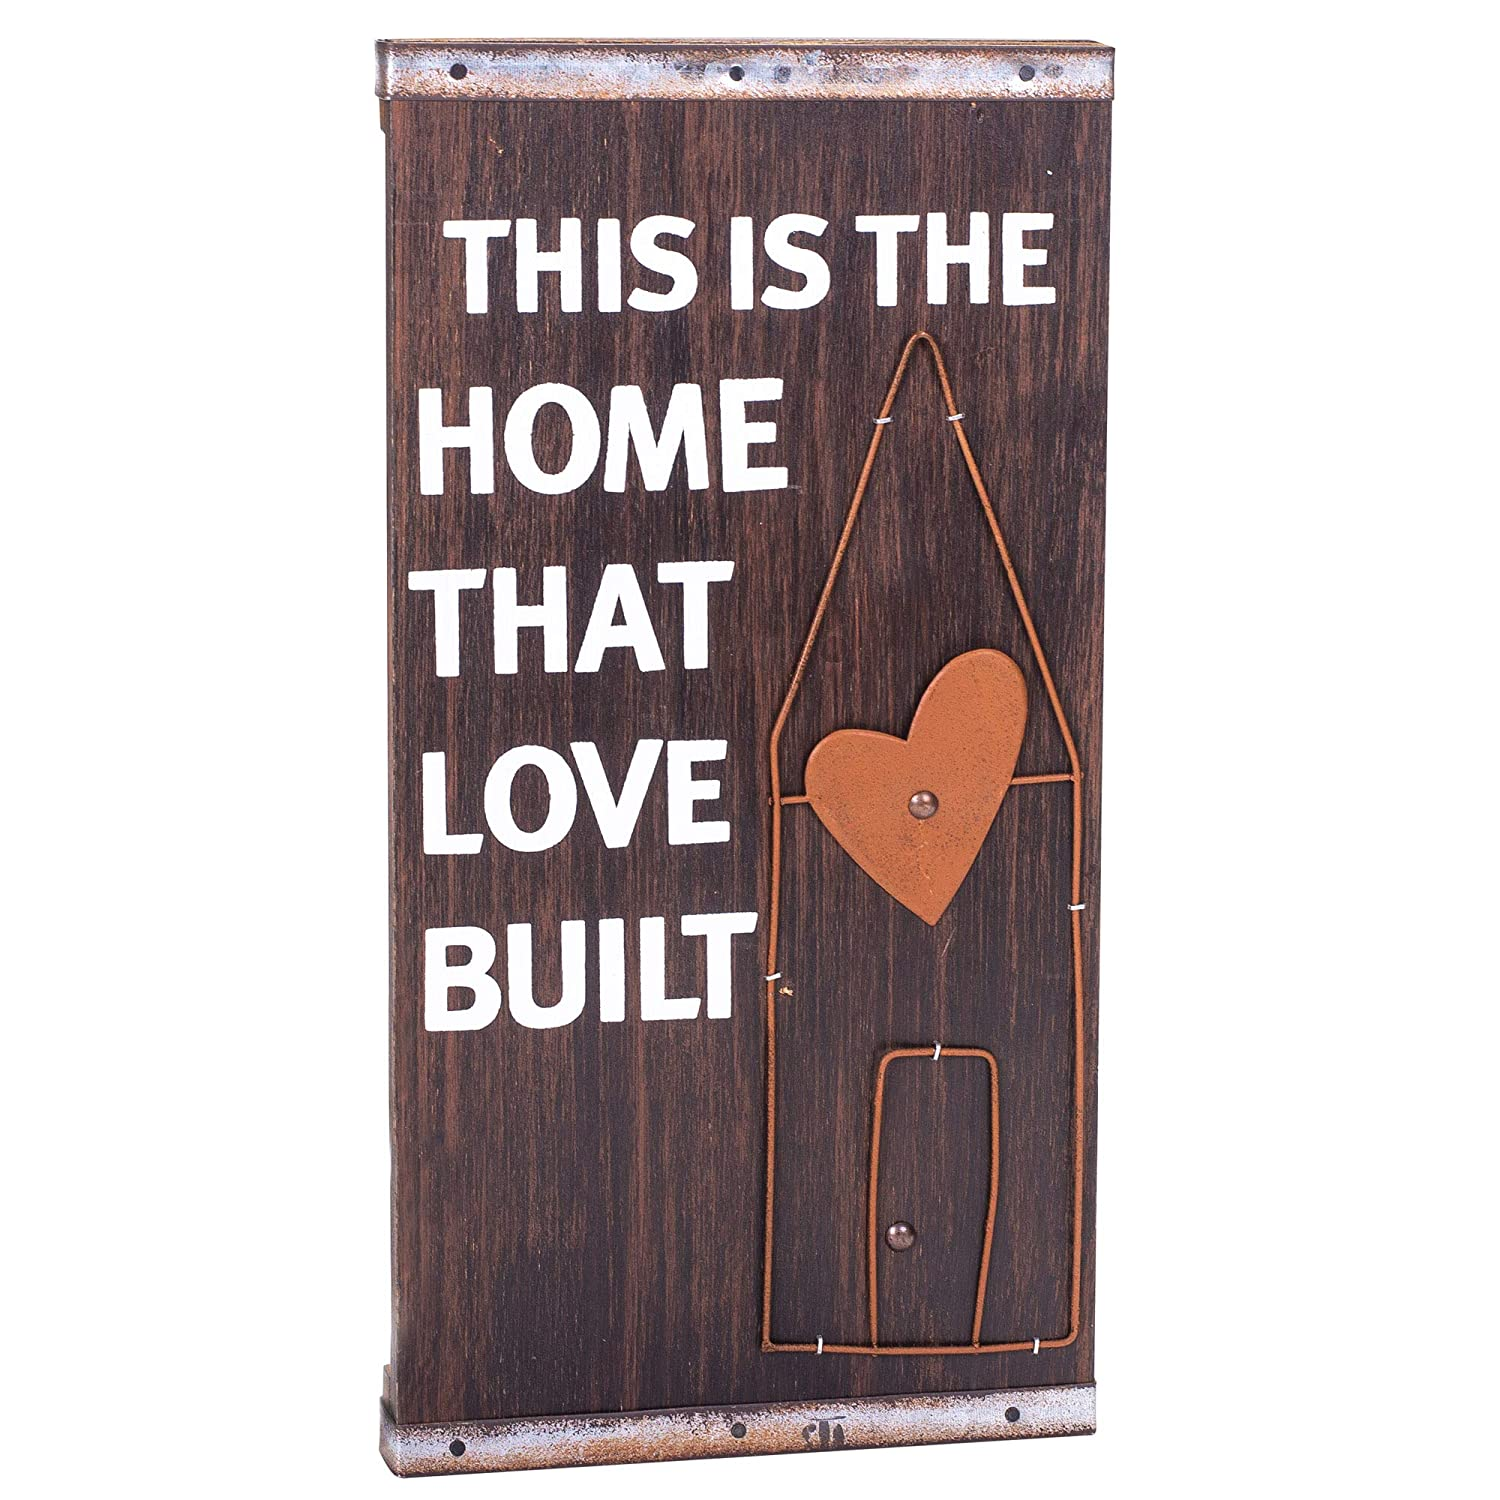 ShopGanz House That Love Built Brown 8 x 16 Inch Wood and Metal Decorative Hanging Wall Plaque